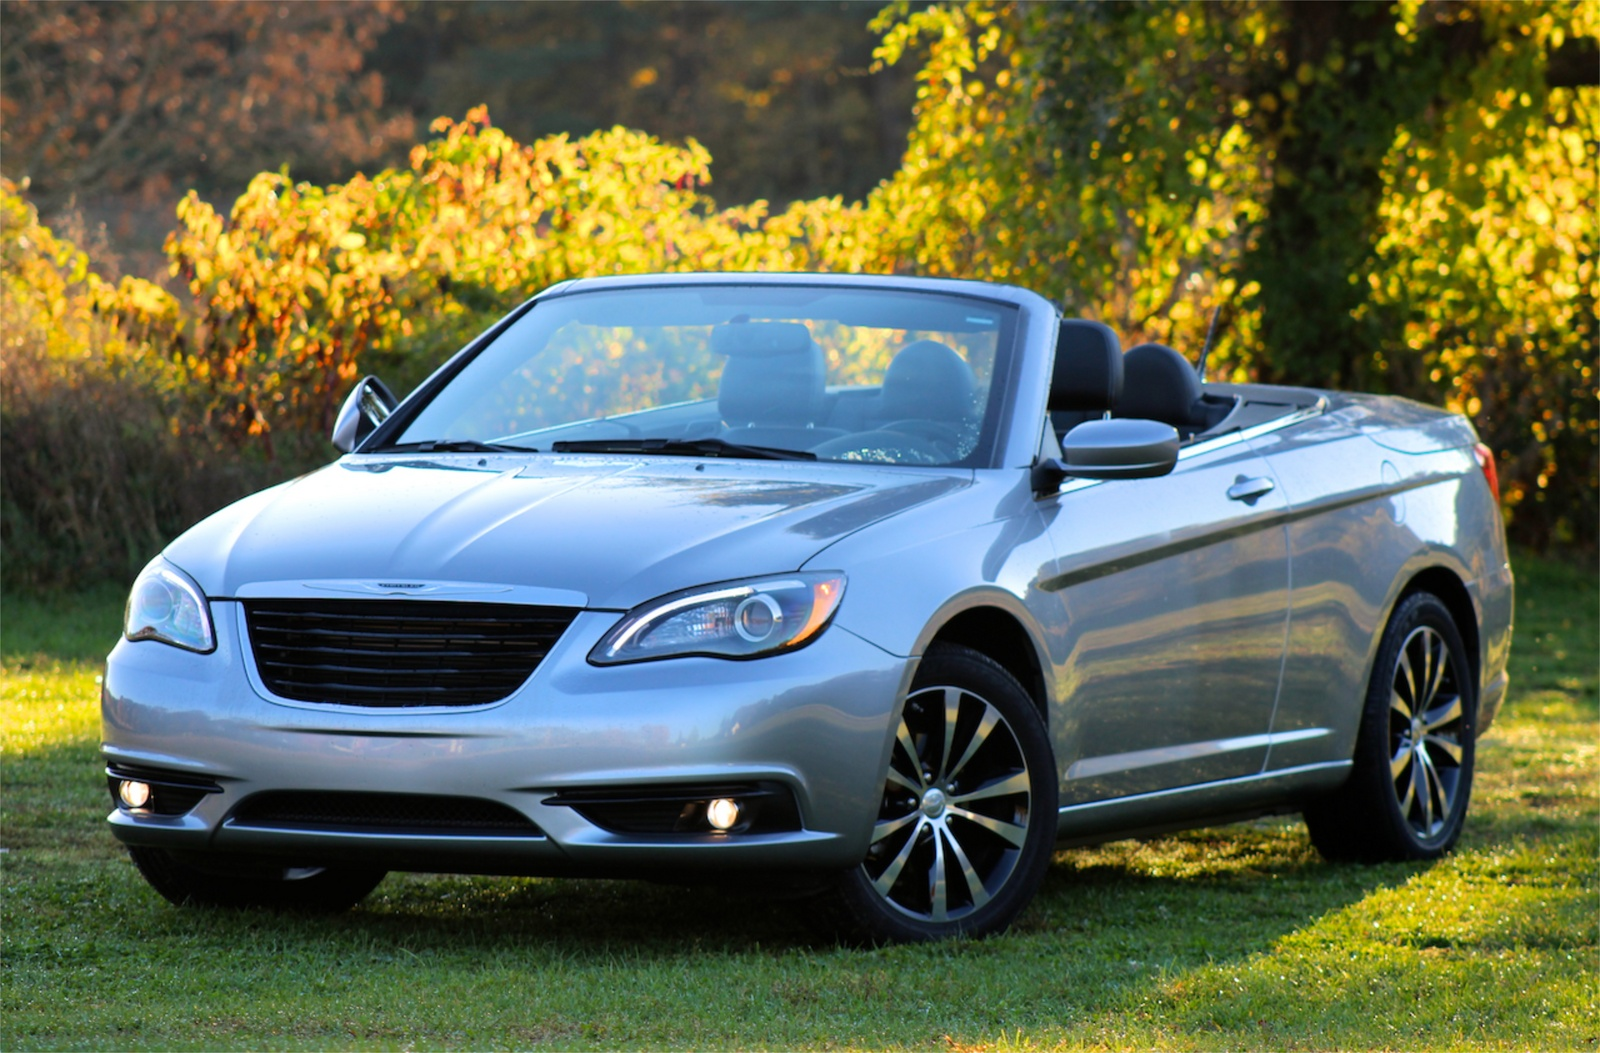 Front 3/4 view of the 2013 Chrysler 200S Convertible, exterior, lead_in